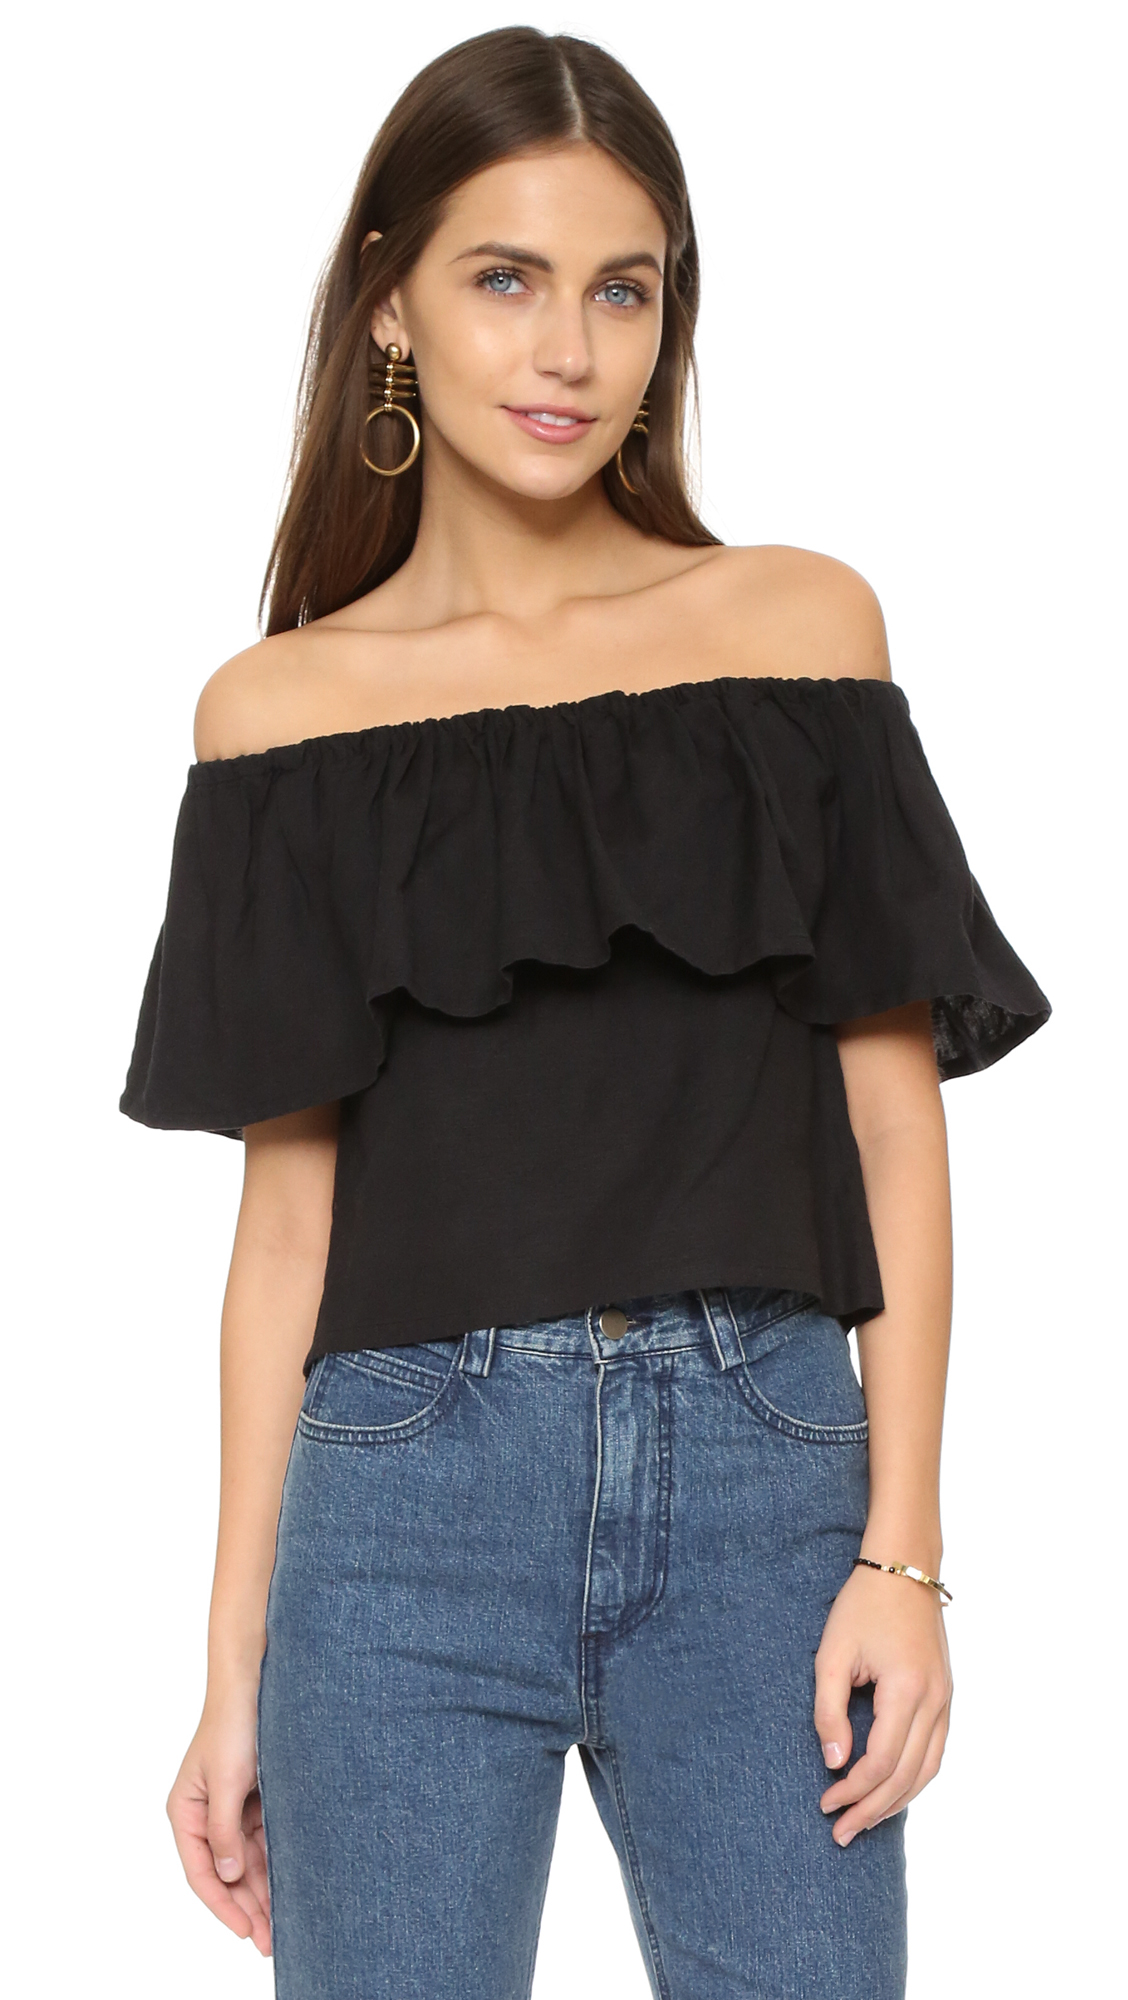 mara hoffman ruffle off shoulder top black in black lyst. Black Bedroom Furniture Sets. Home Design Ideas